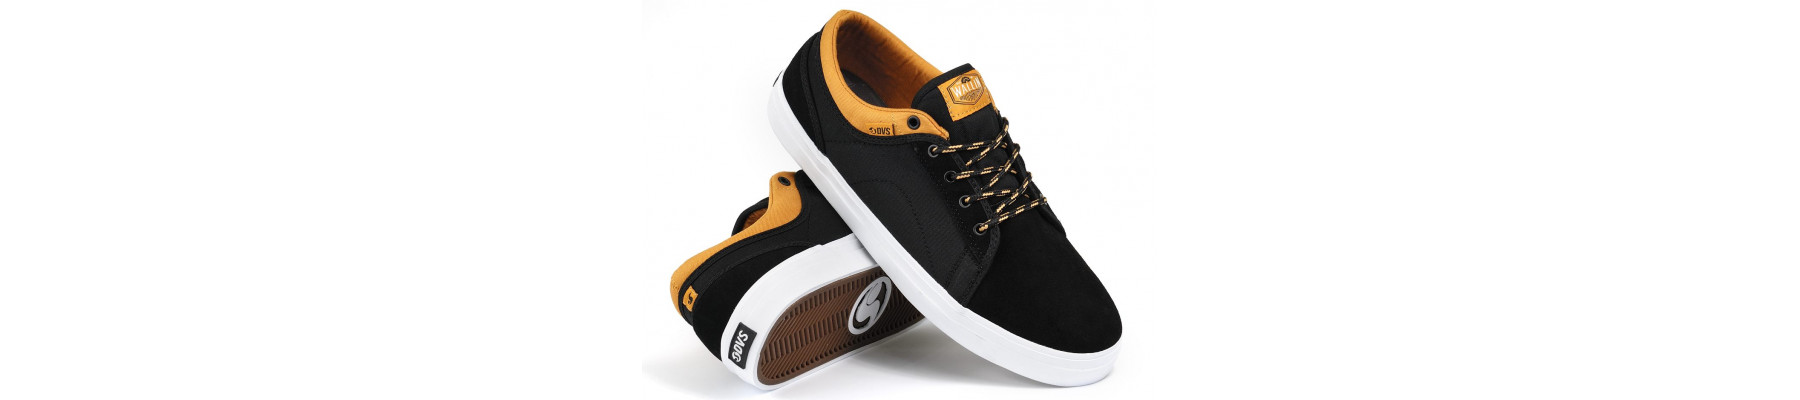 DVS Aversa BlackTan Suede Canvas